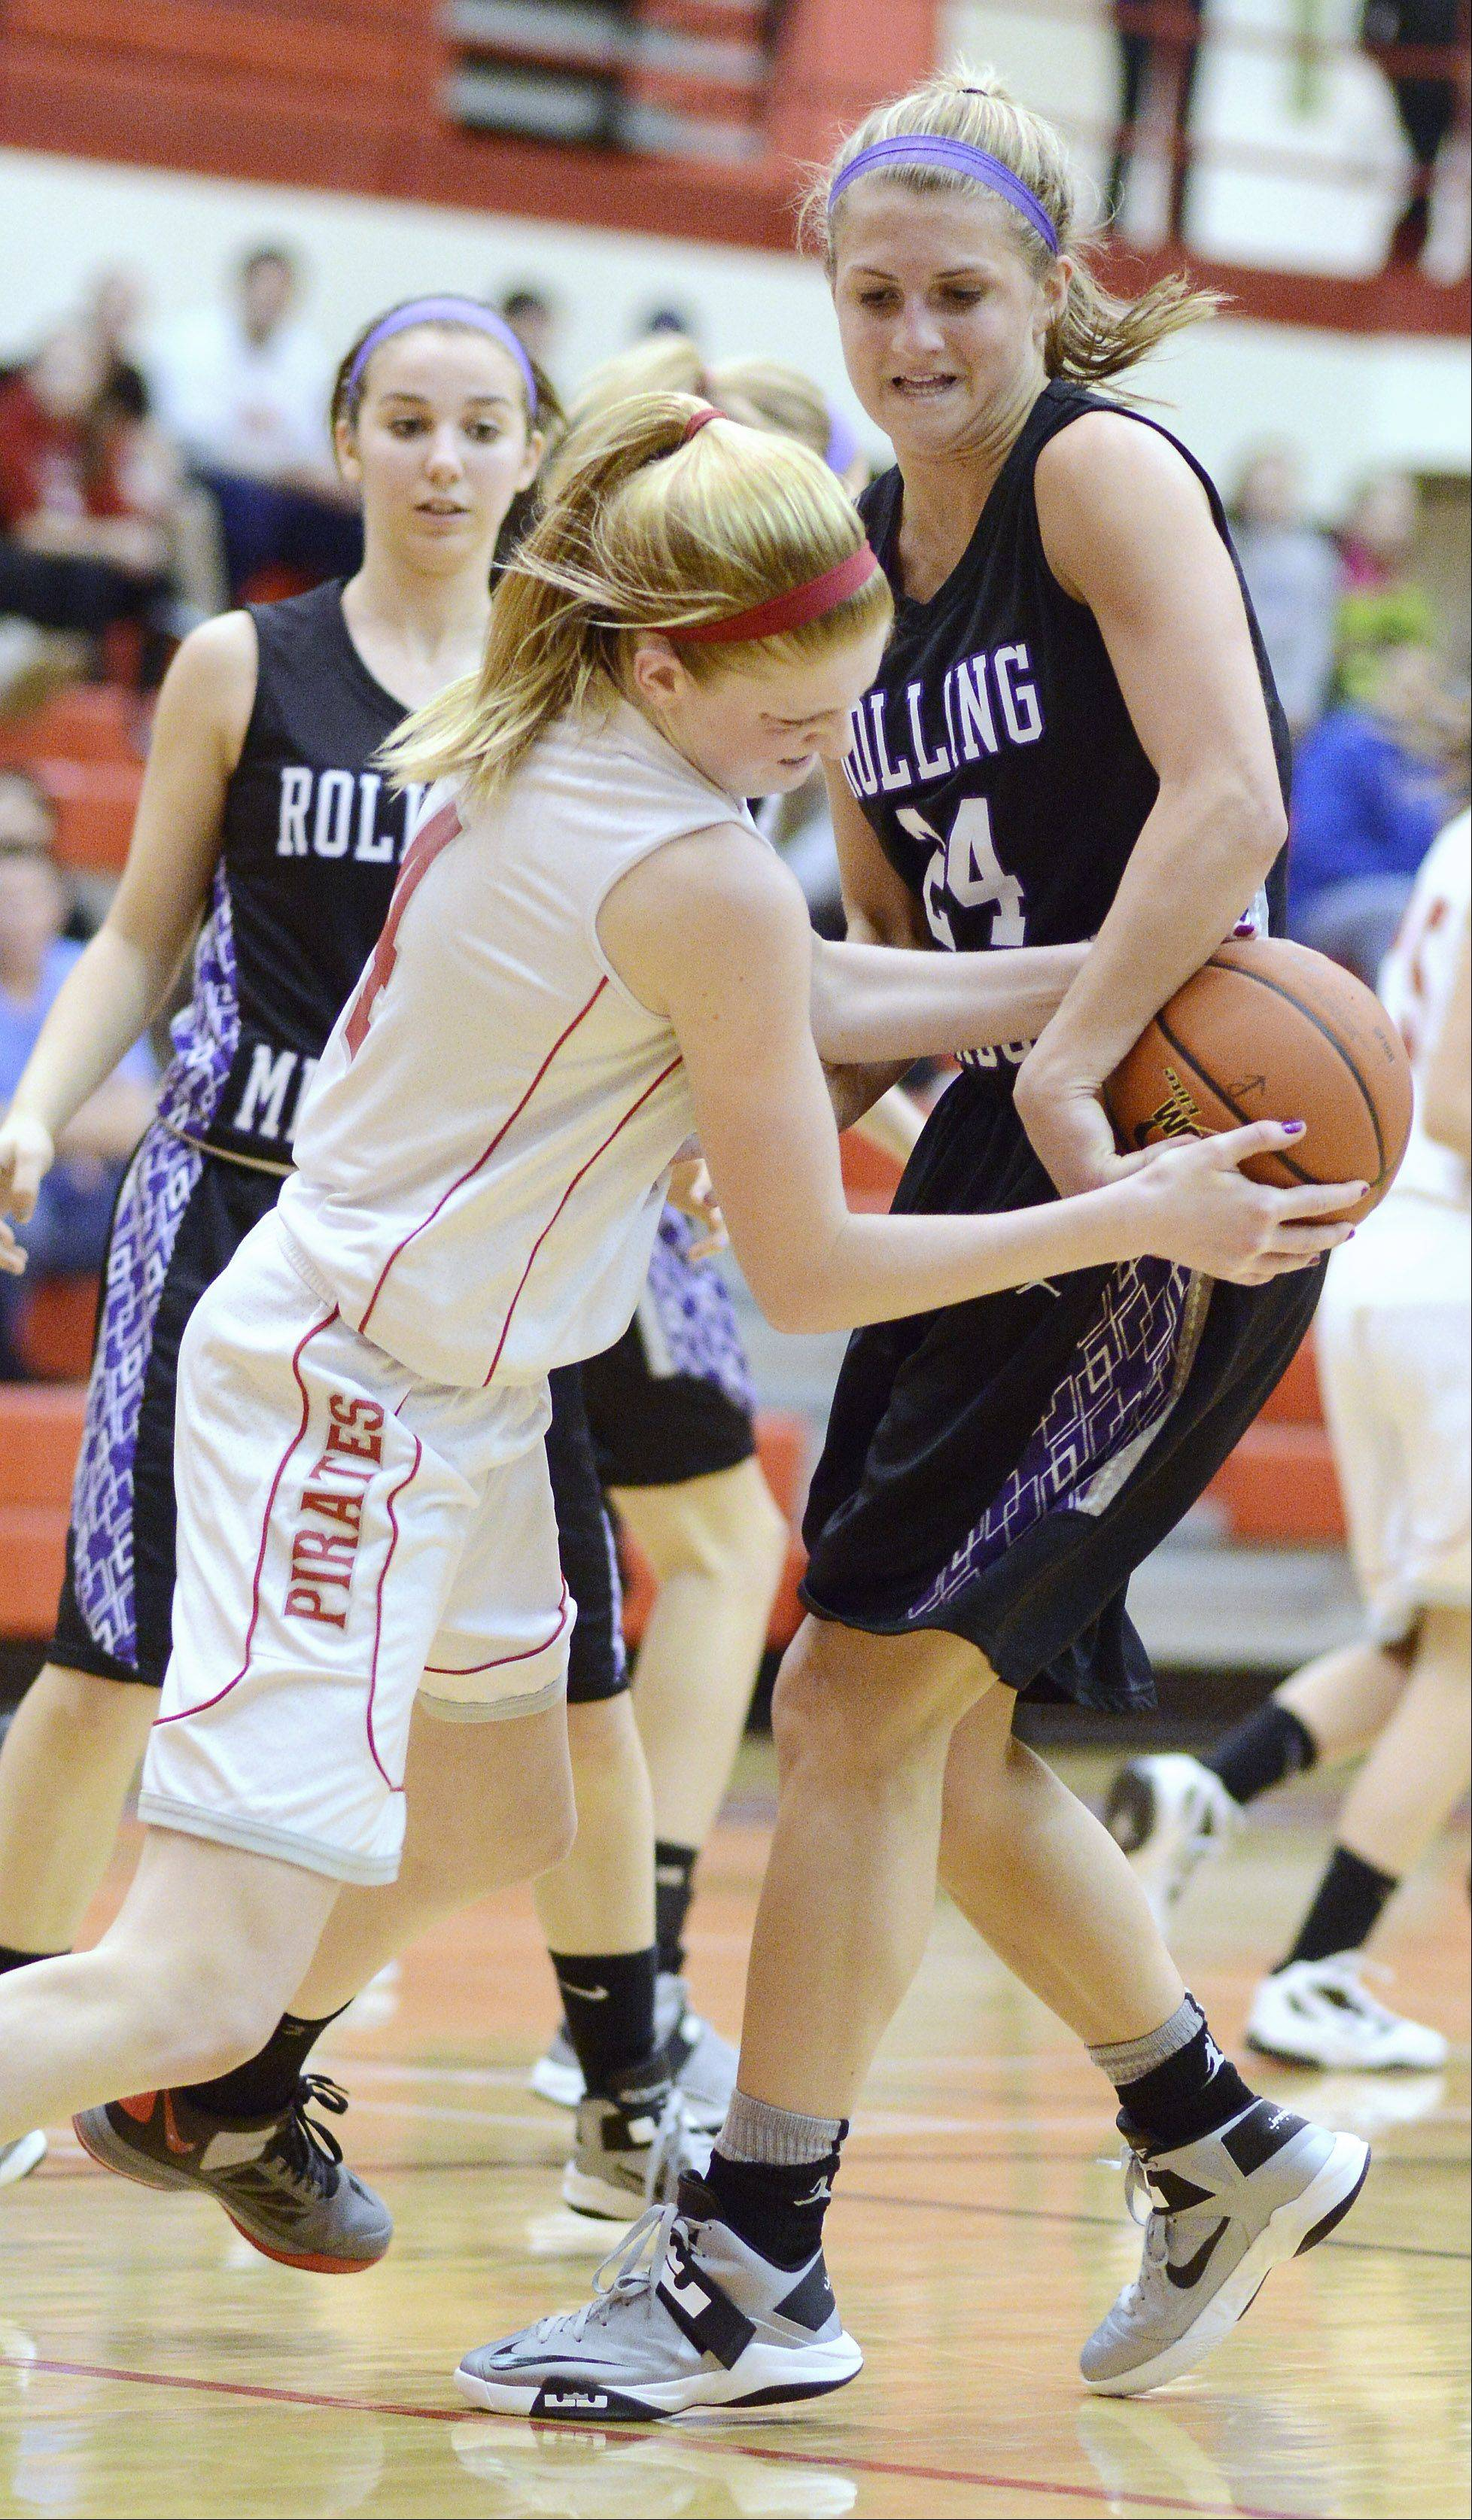 Palatine's Morgan Radtke, left, is fouled by Rolling Meadows defender Alexis Glasgow.